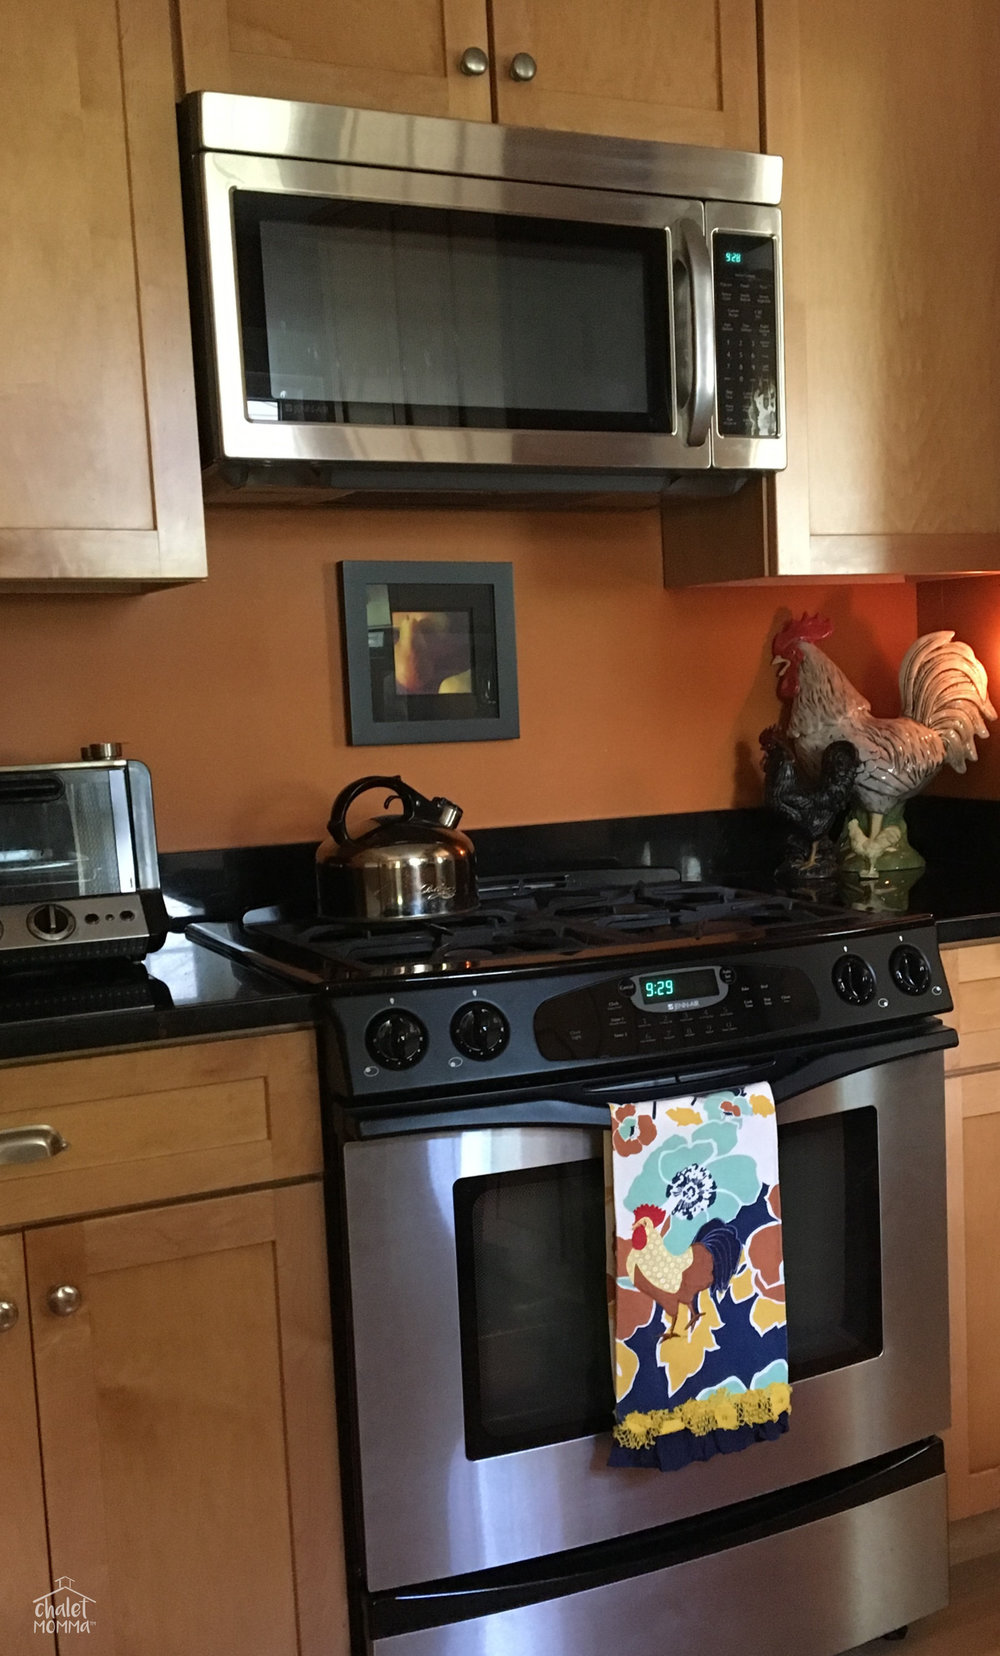 kitchen stove top cropped .jpg